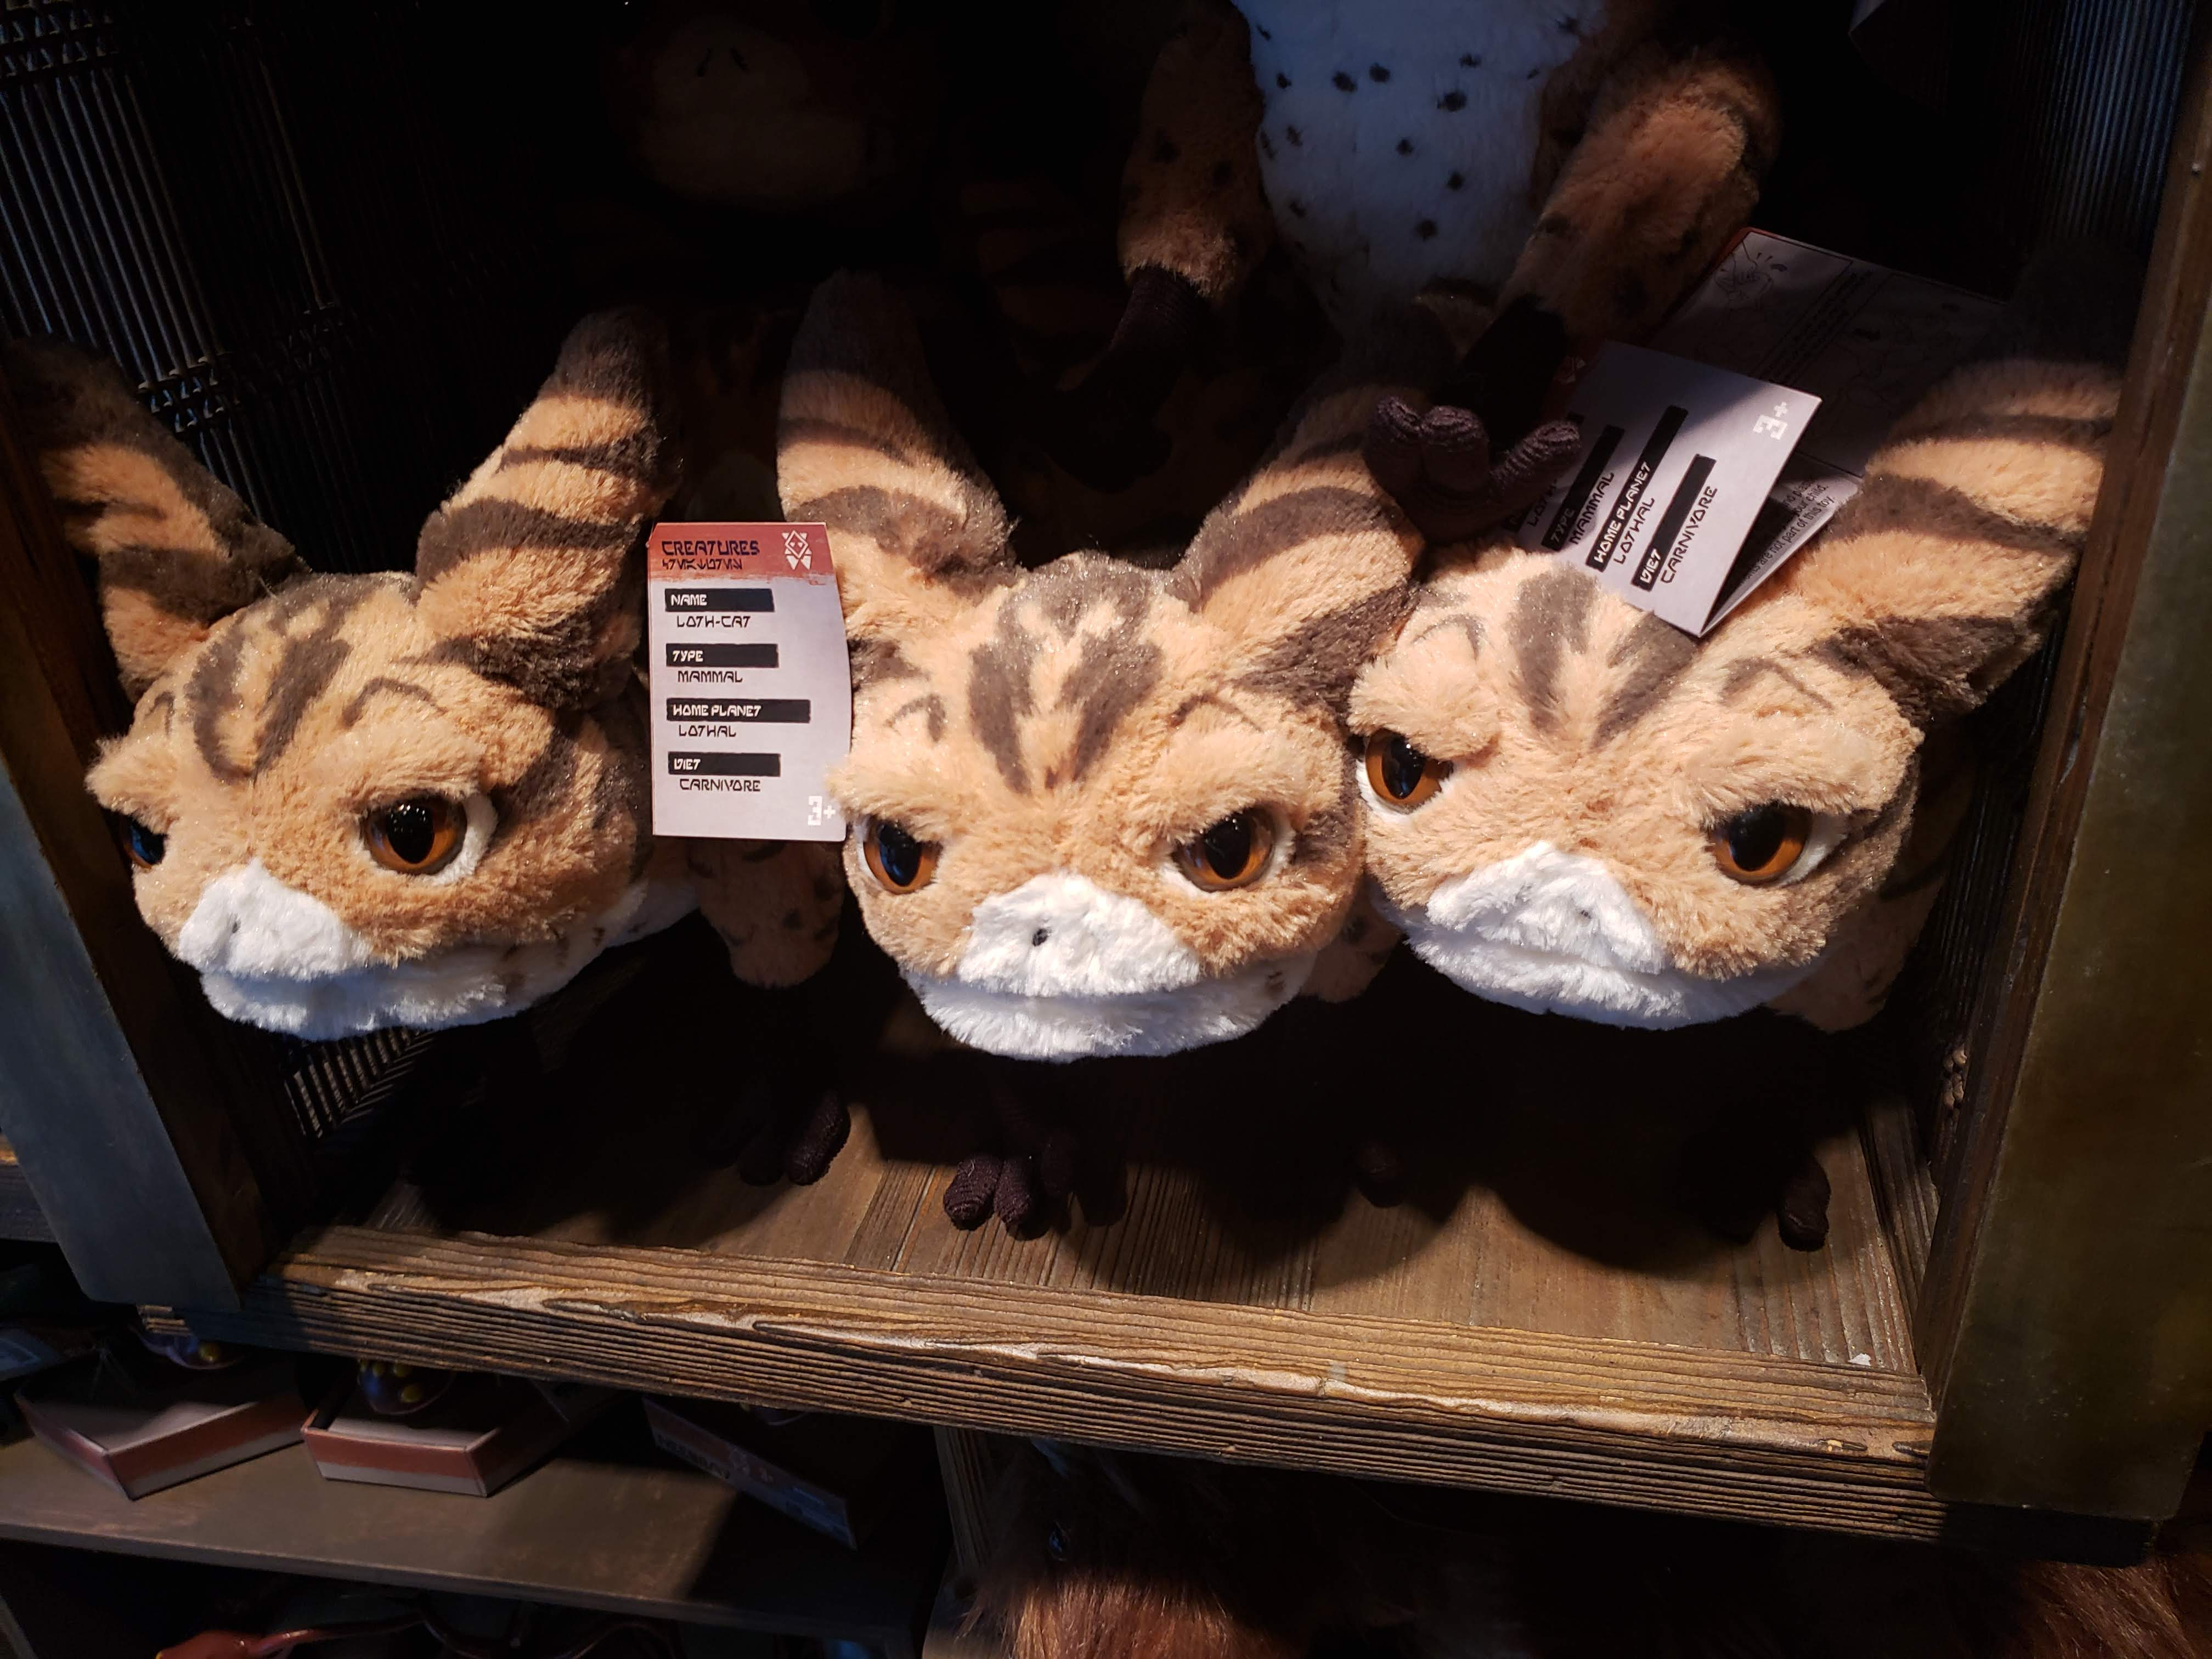 Visit the Creature Stall in Galaxy's Edge to adopt your own Loth-Cat.